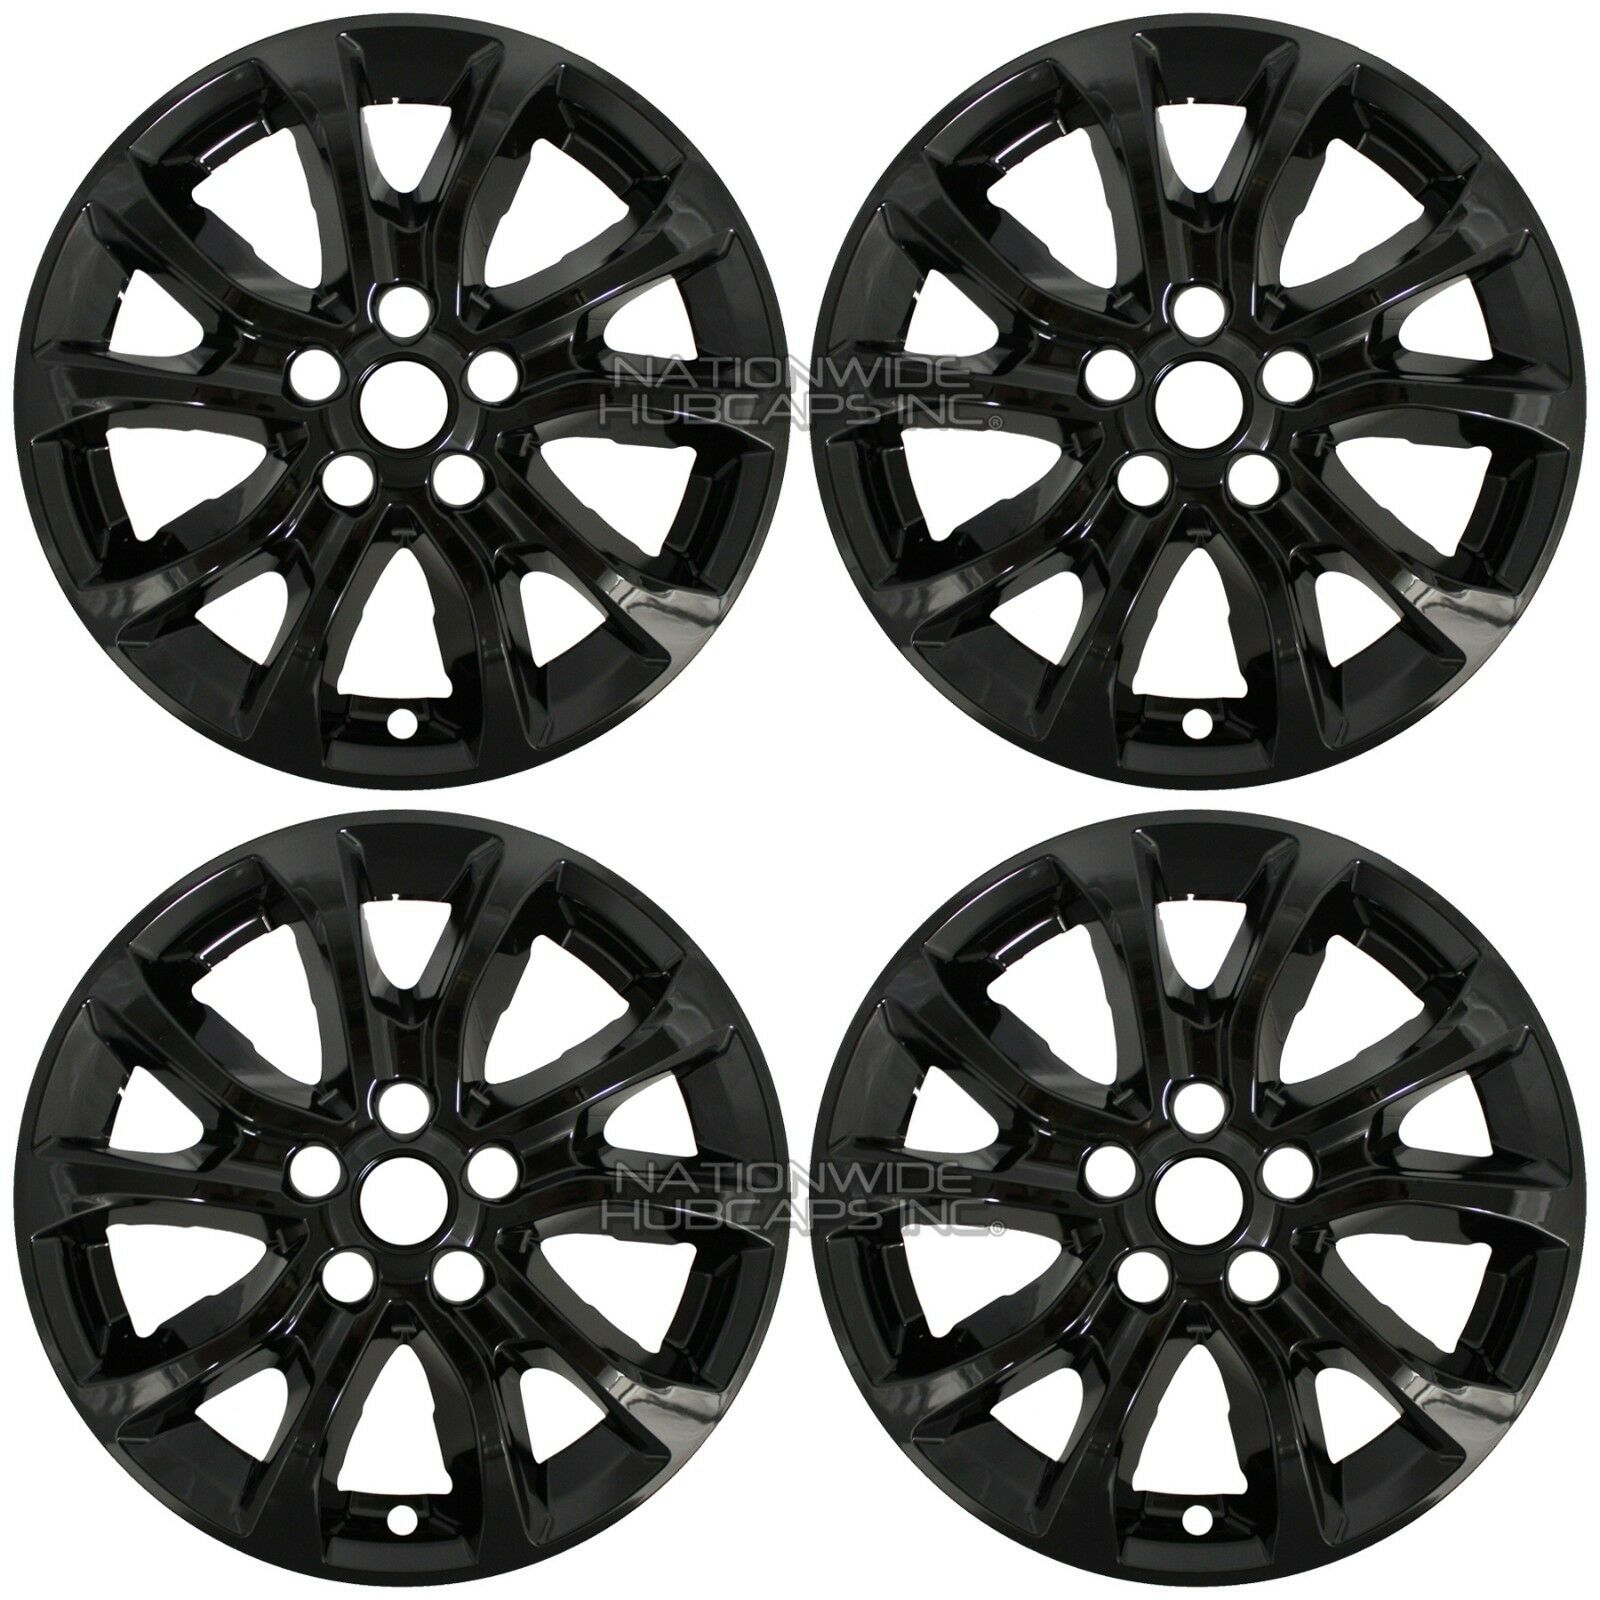 4 black 2018 2019 equinox 17 wheel skins hub caps full covers fit 2019 Chevy Traverse norton secured powered by verisign